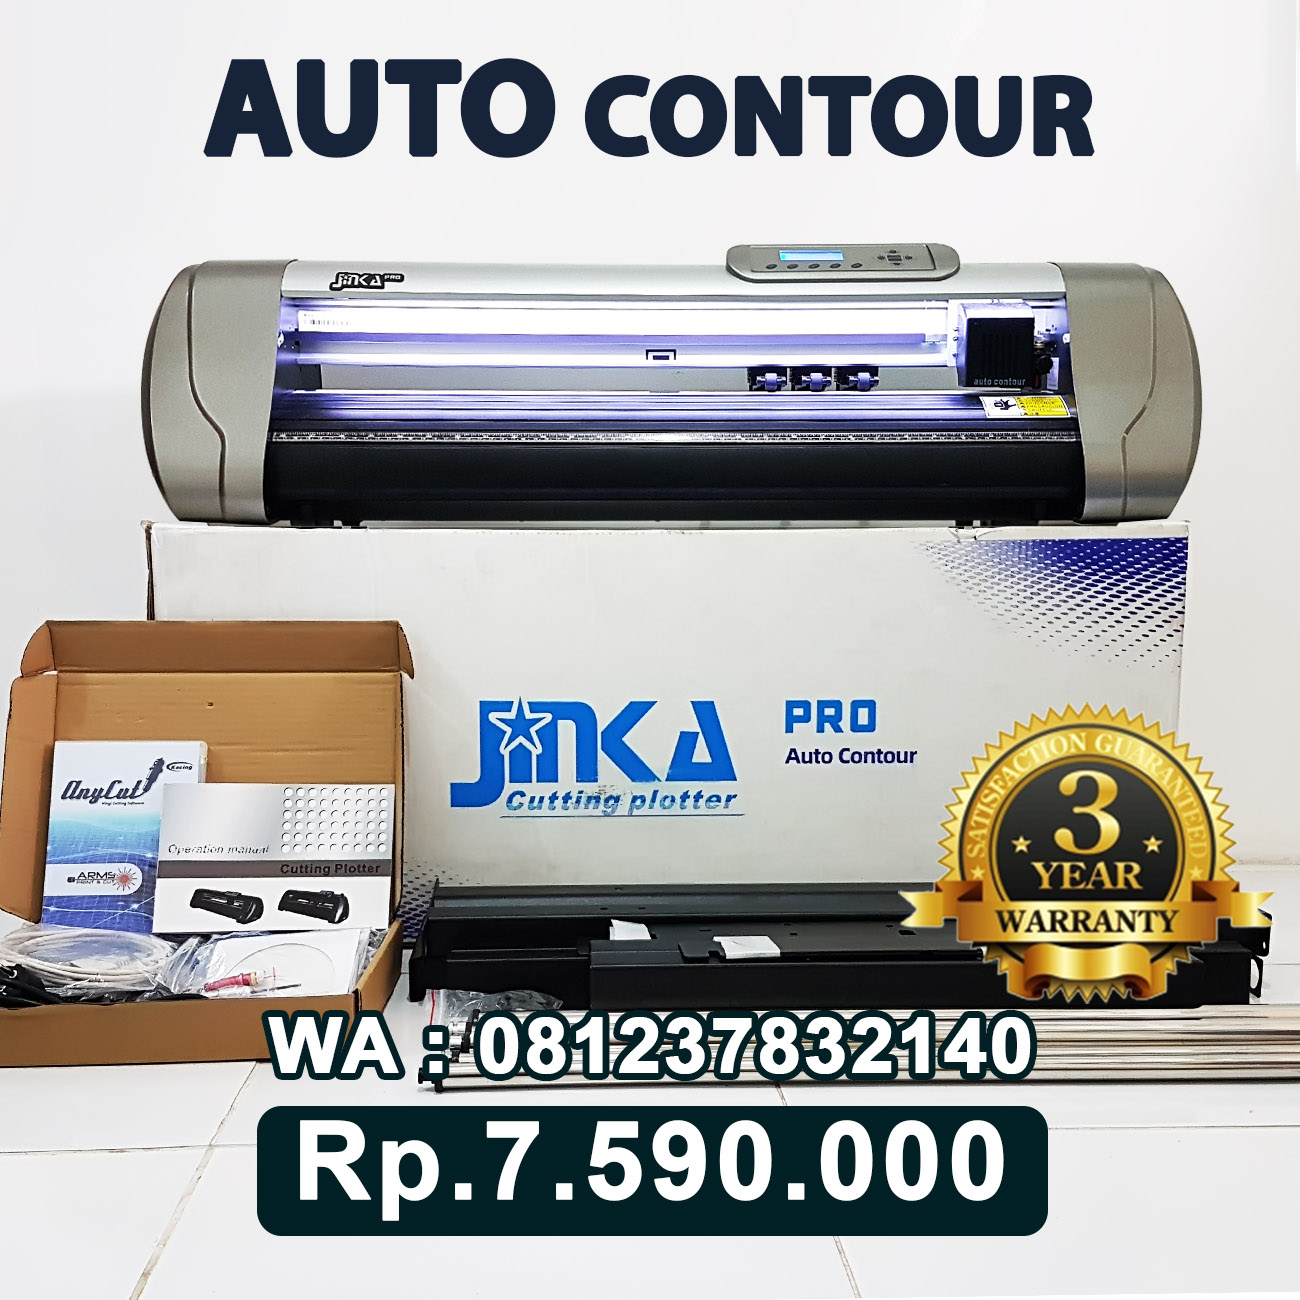 JUAL MESIN CUTTING STICKER JINKA PRO 722 LED AUTO CONTOUR CUT Mataram